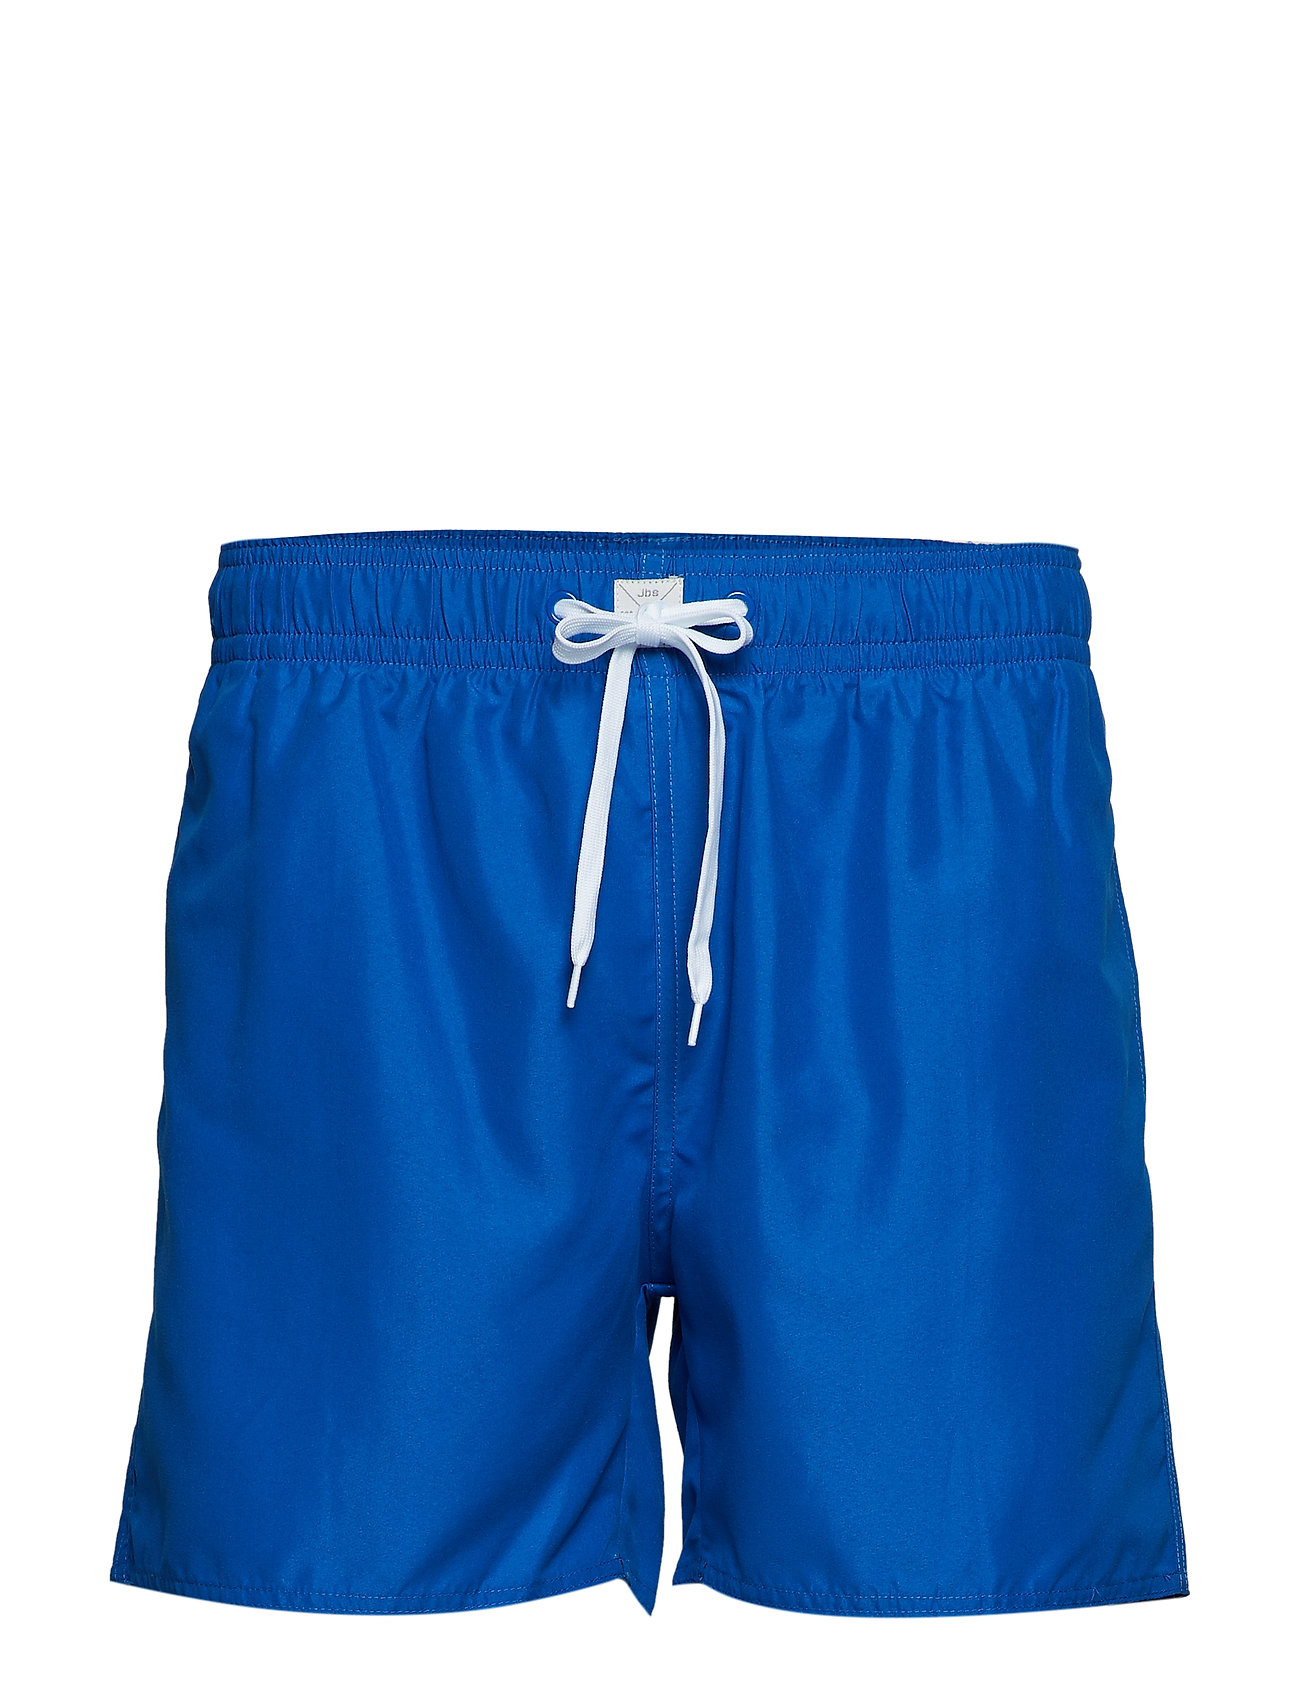 JBS JBS swim shorts - BLUE